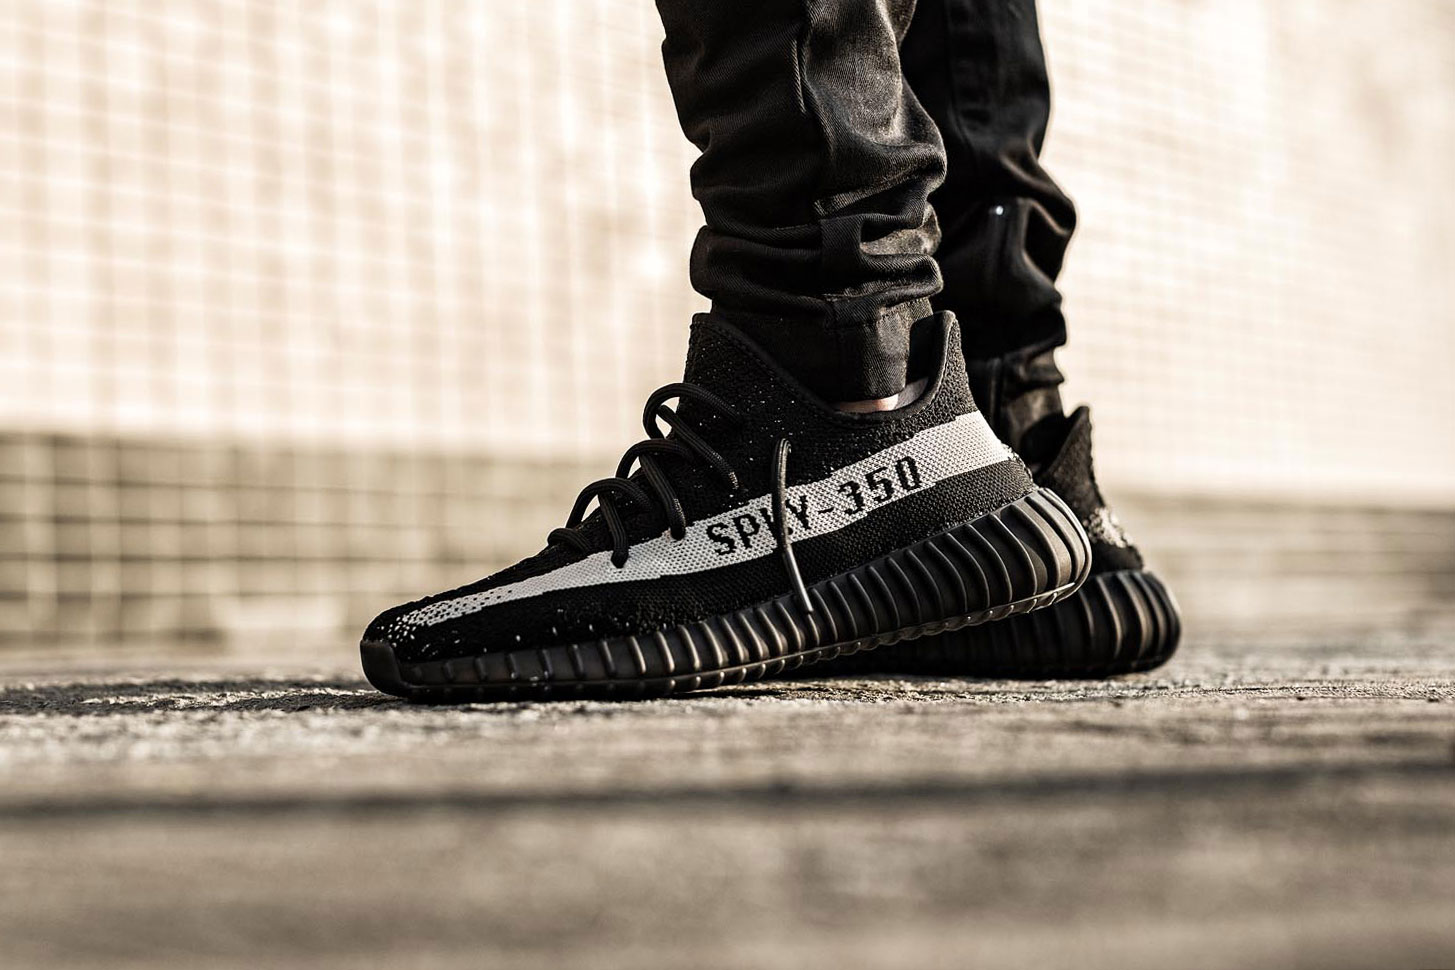 Where To Buy Yeezy boost 350 v2 'Zebra' raffle online cp9654 canada